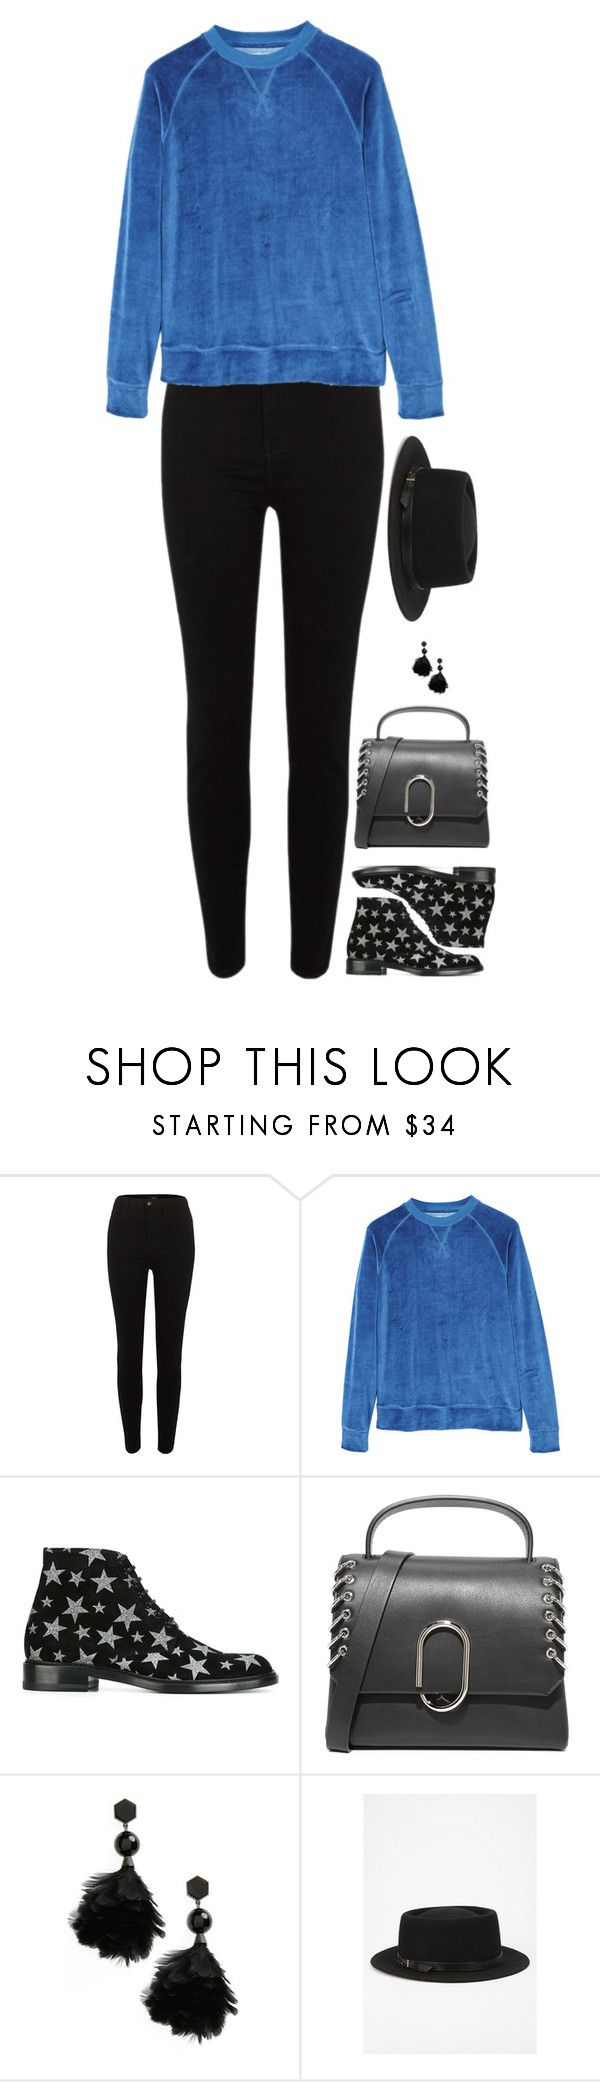 """""""Untitled #10019"""" by miki006 ❤ liked on Polyvore featuring River Island, MANGO, Yves Saint Laurent, 3.1 Phillip Lim, Tory Burch and Deena & Ozzy"""